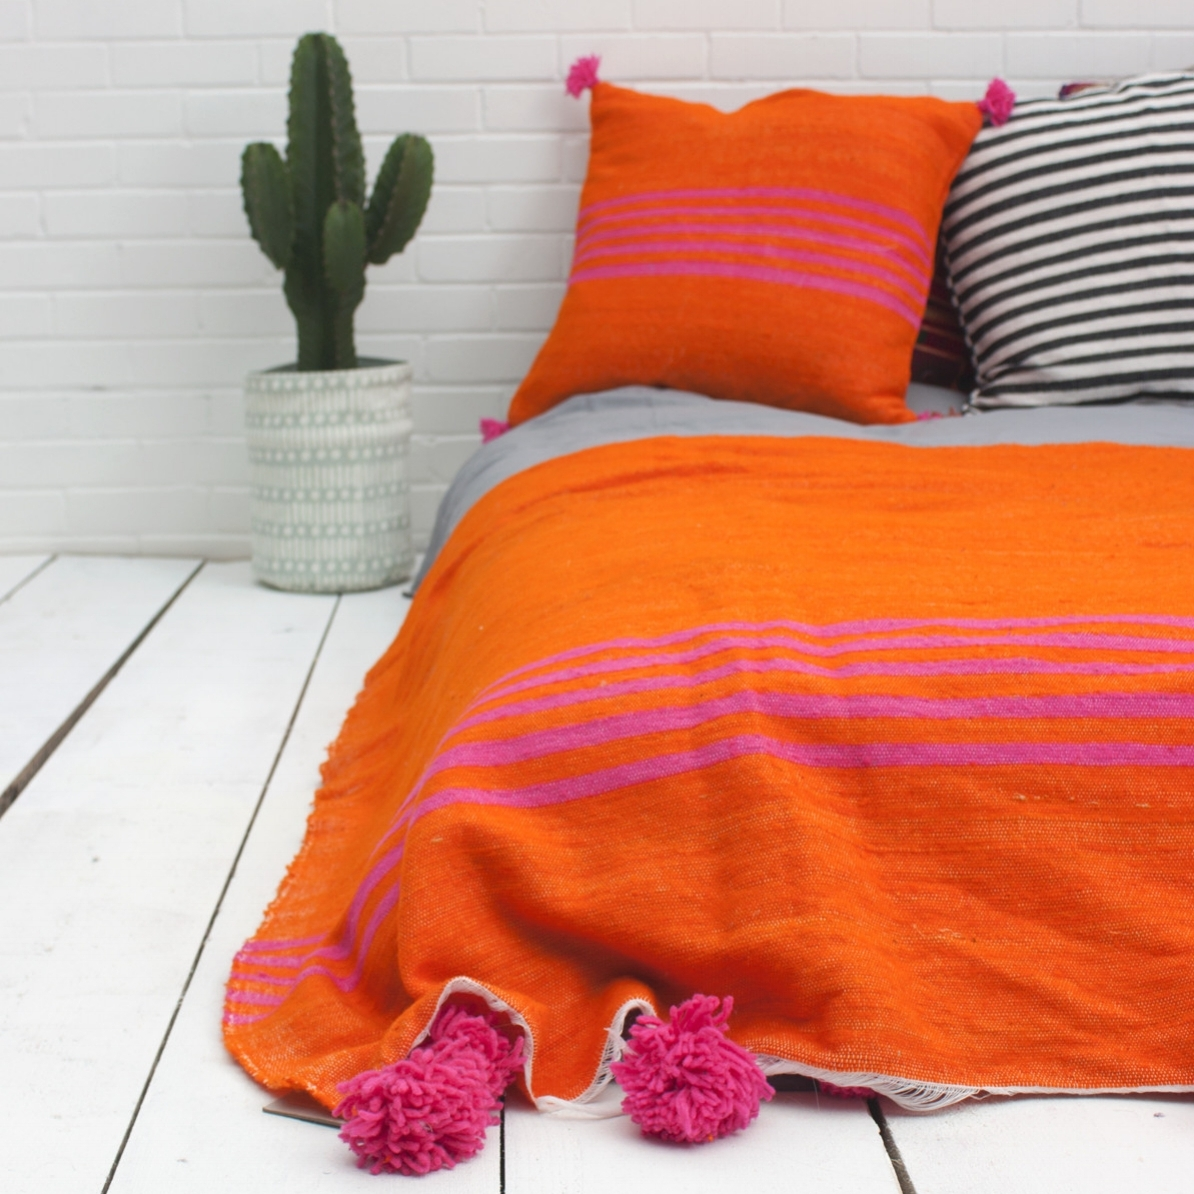 Wollplaids in sonnig warmem Orange mit Pink